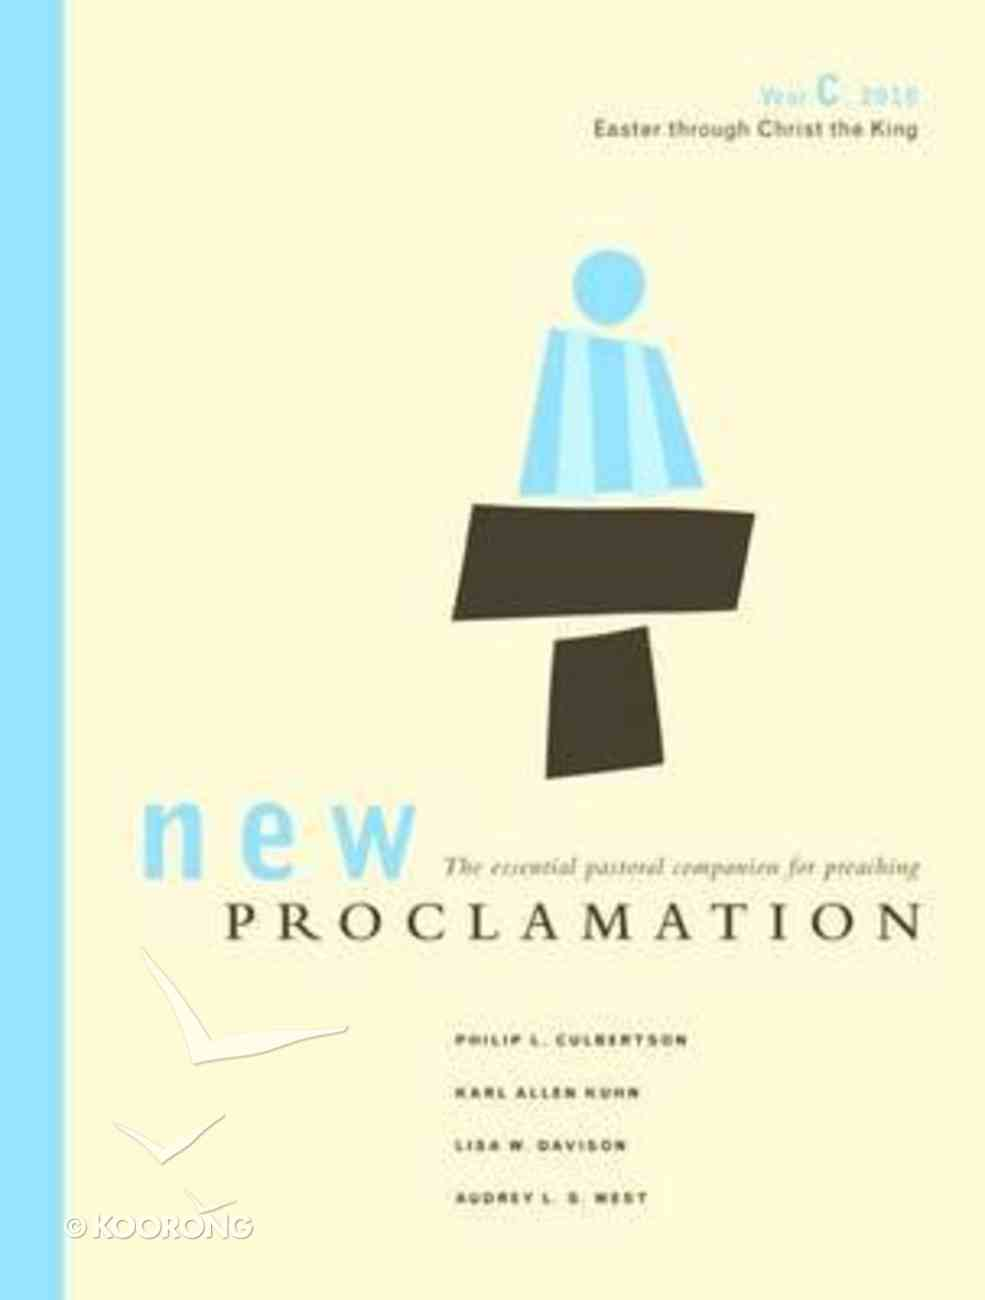 New Proclamation (Year C, 2010, Easter To The King) Paperback